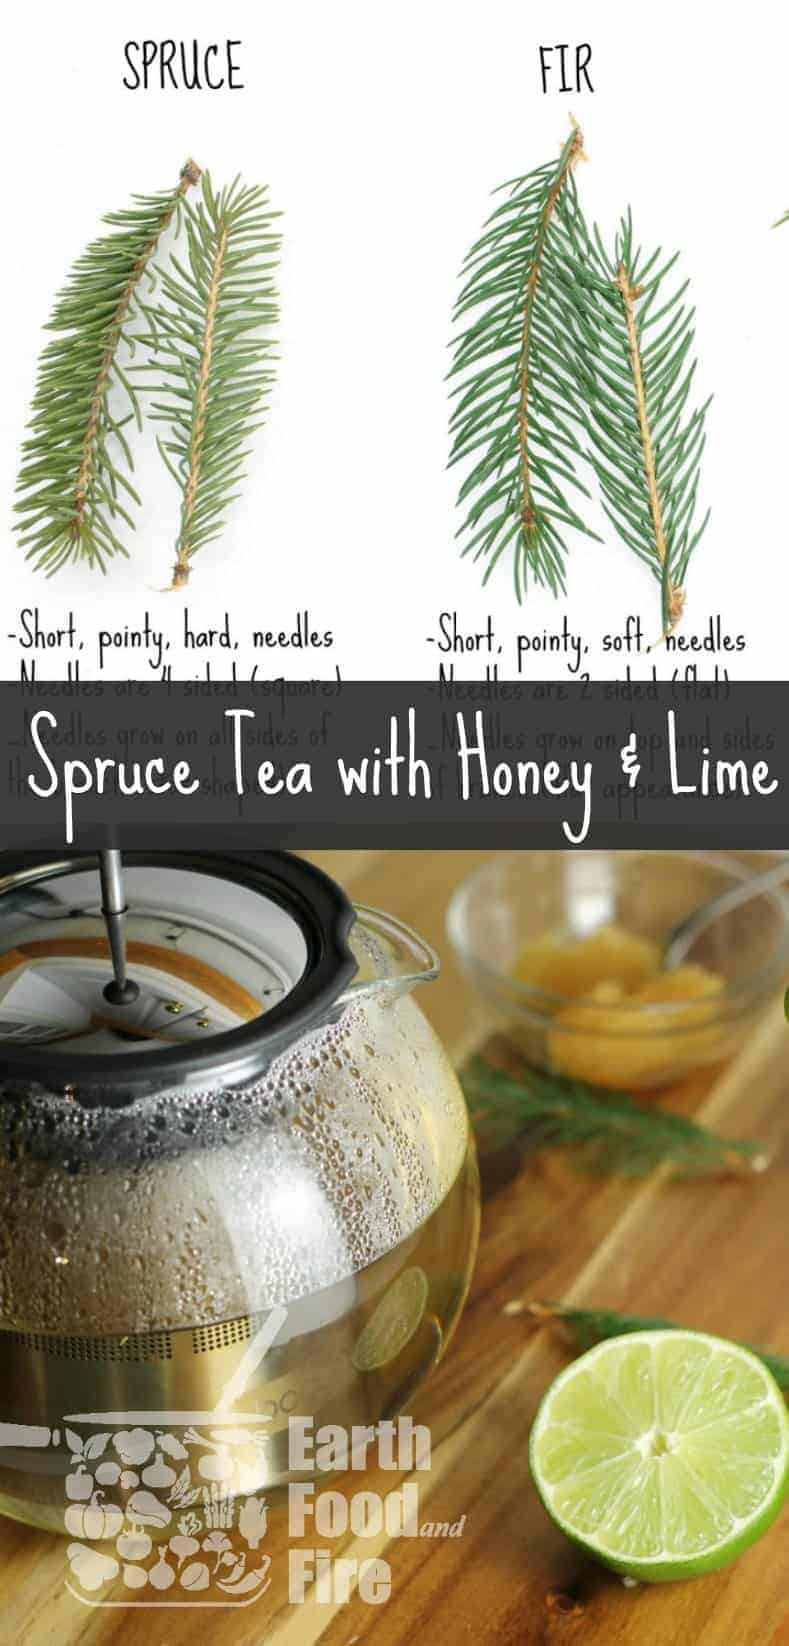 A simple wild foraged herbal tea, spruce tea is loaded with Vitamin C and is a great drink to enjoy on a cold winters day. #tea #foraging #wildcrafting #spruce